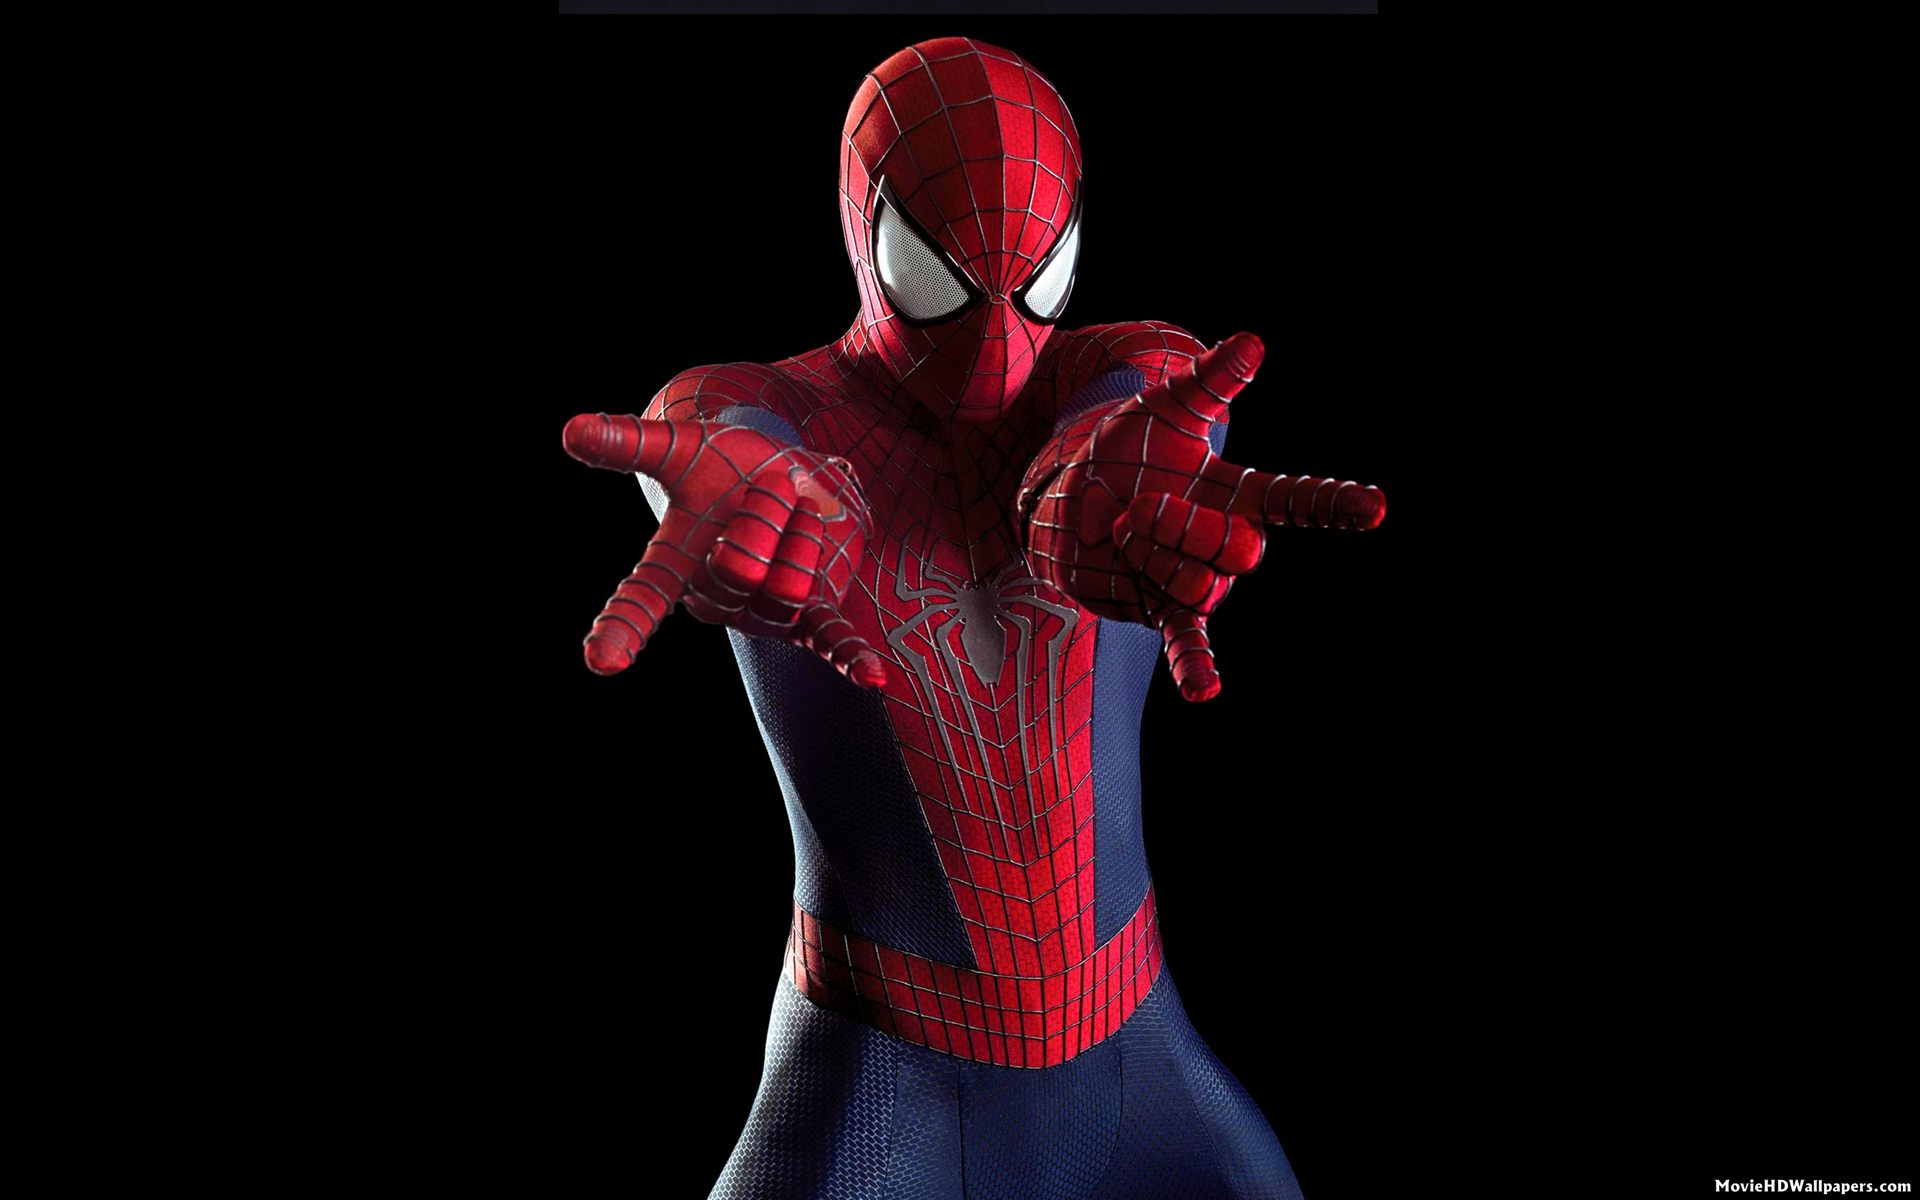 The Amazing Spider Man Hd Wallpapers Group 1920x1200